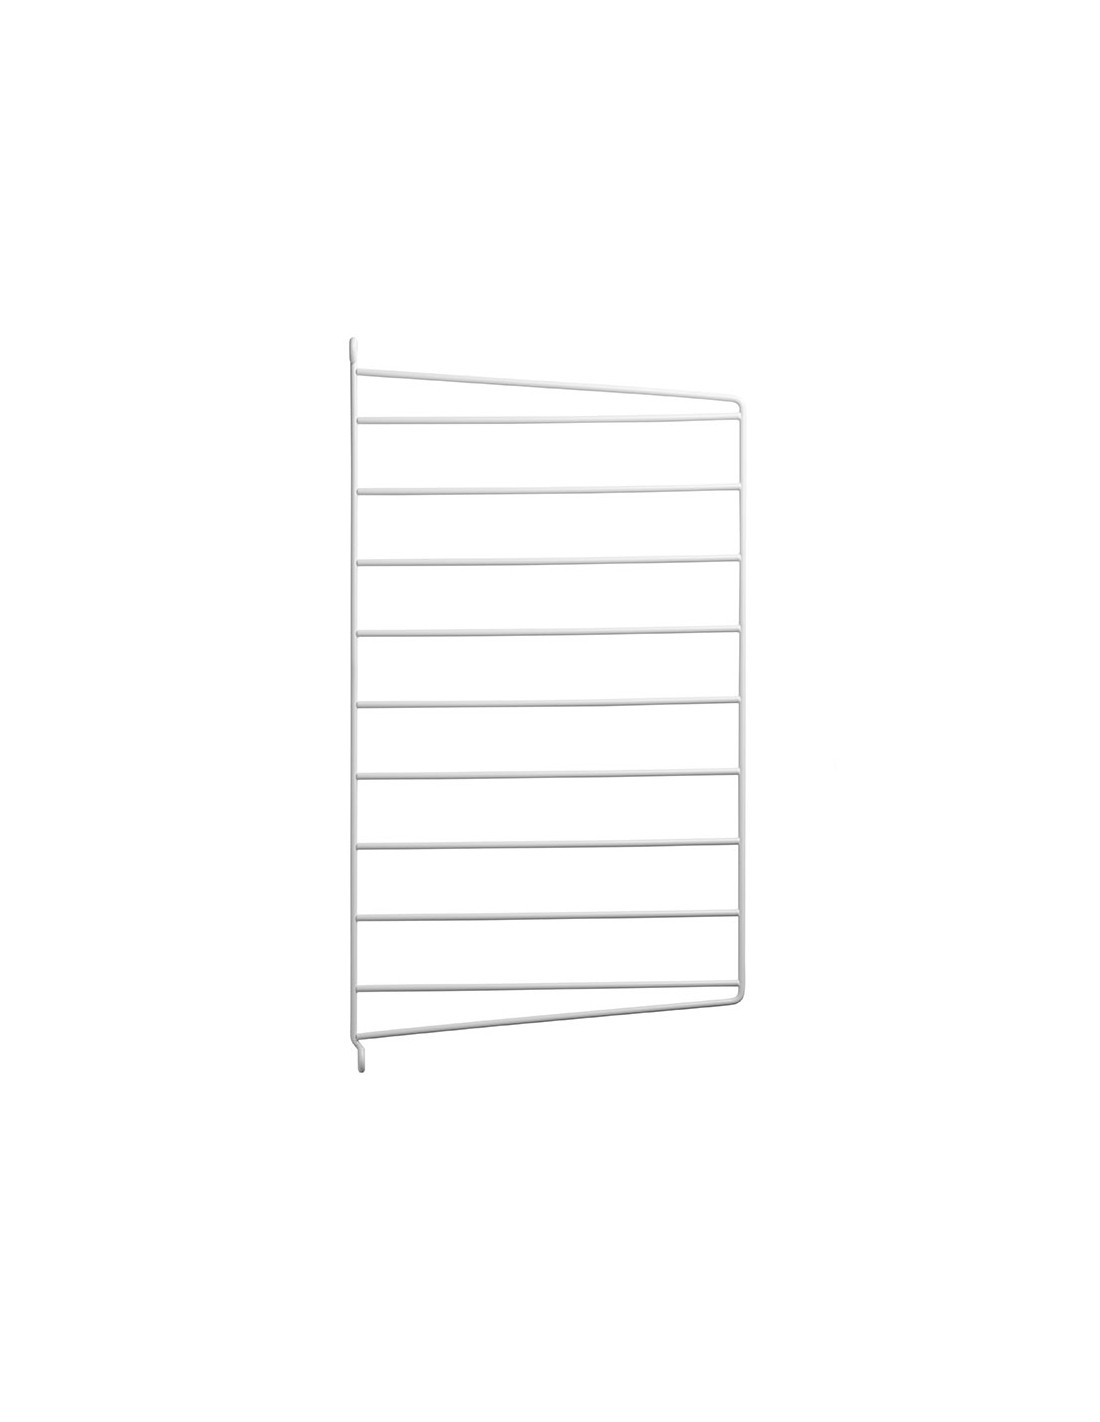 String - Panel Pared 50x30